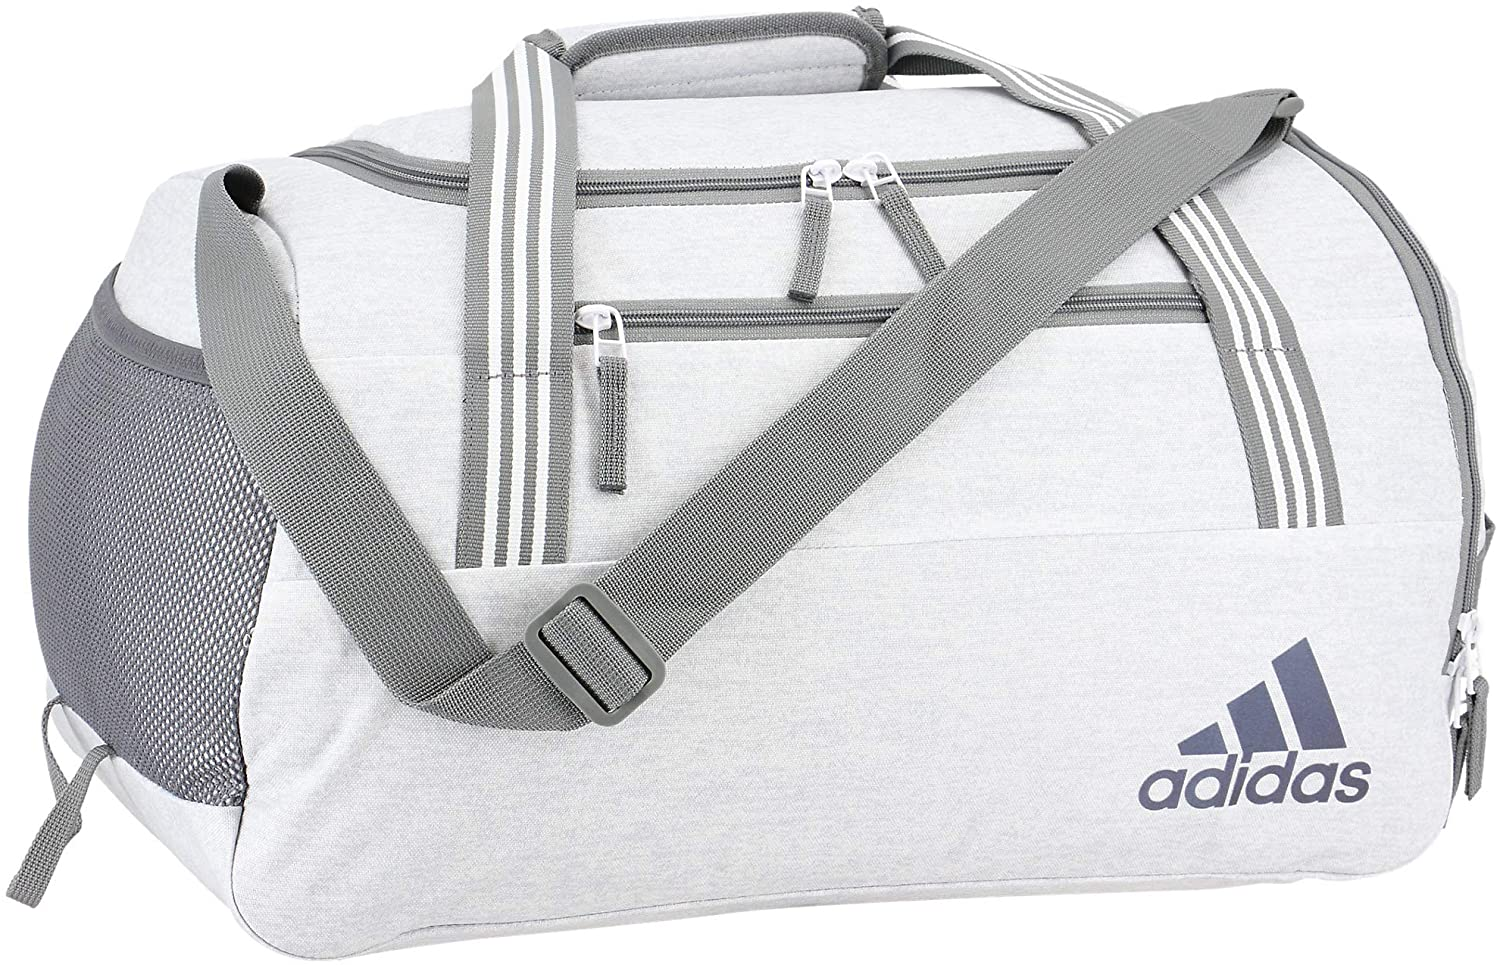 adidas Squad Duffel Bag - United Festival Outfitters